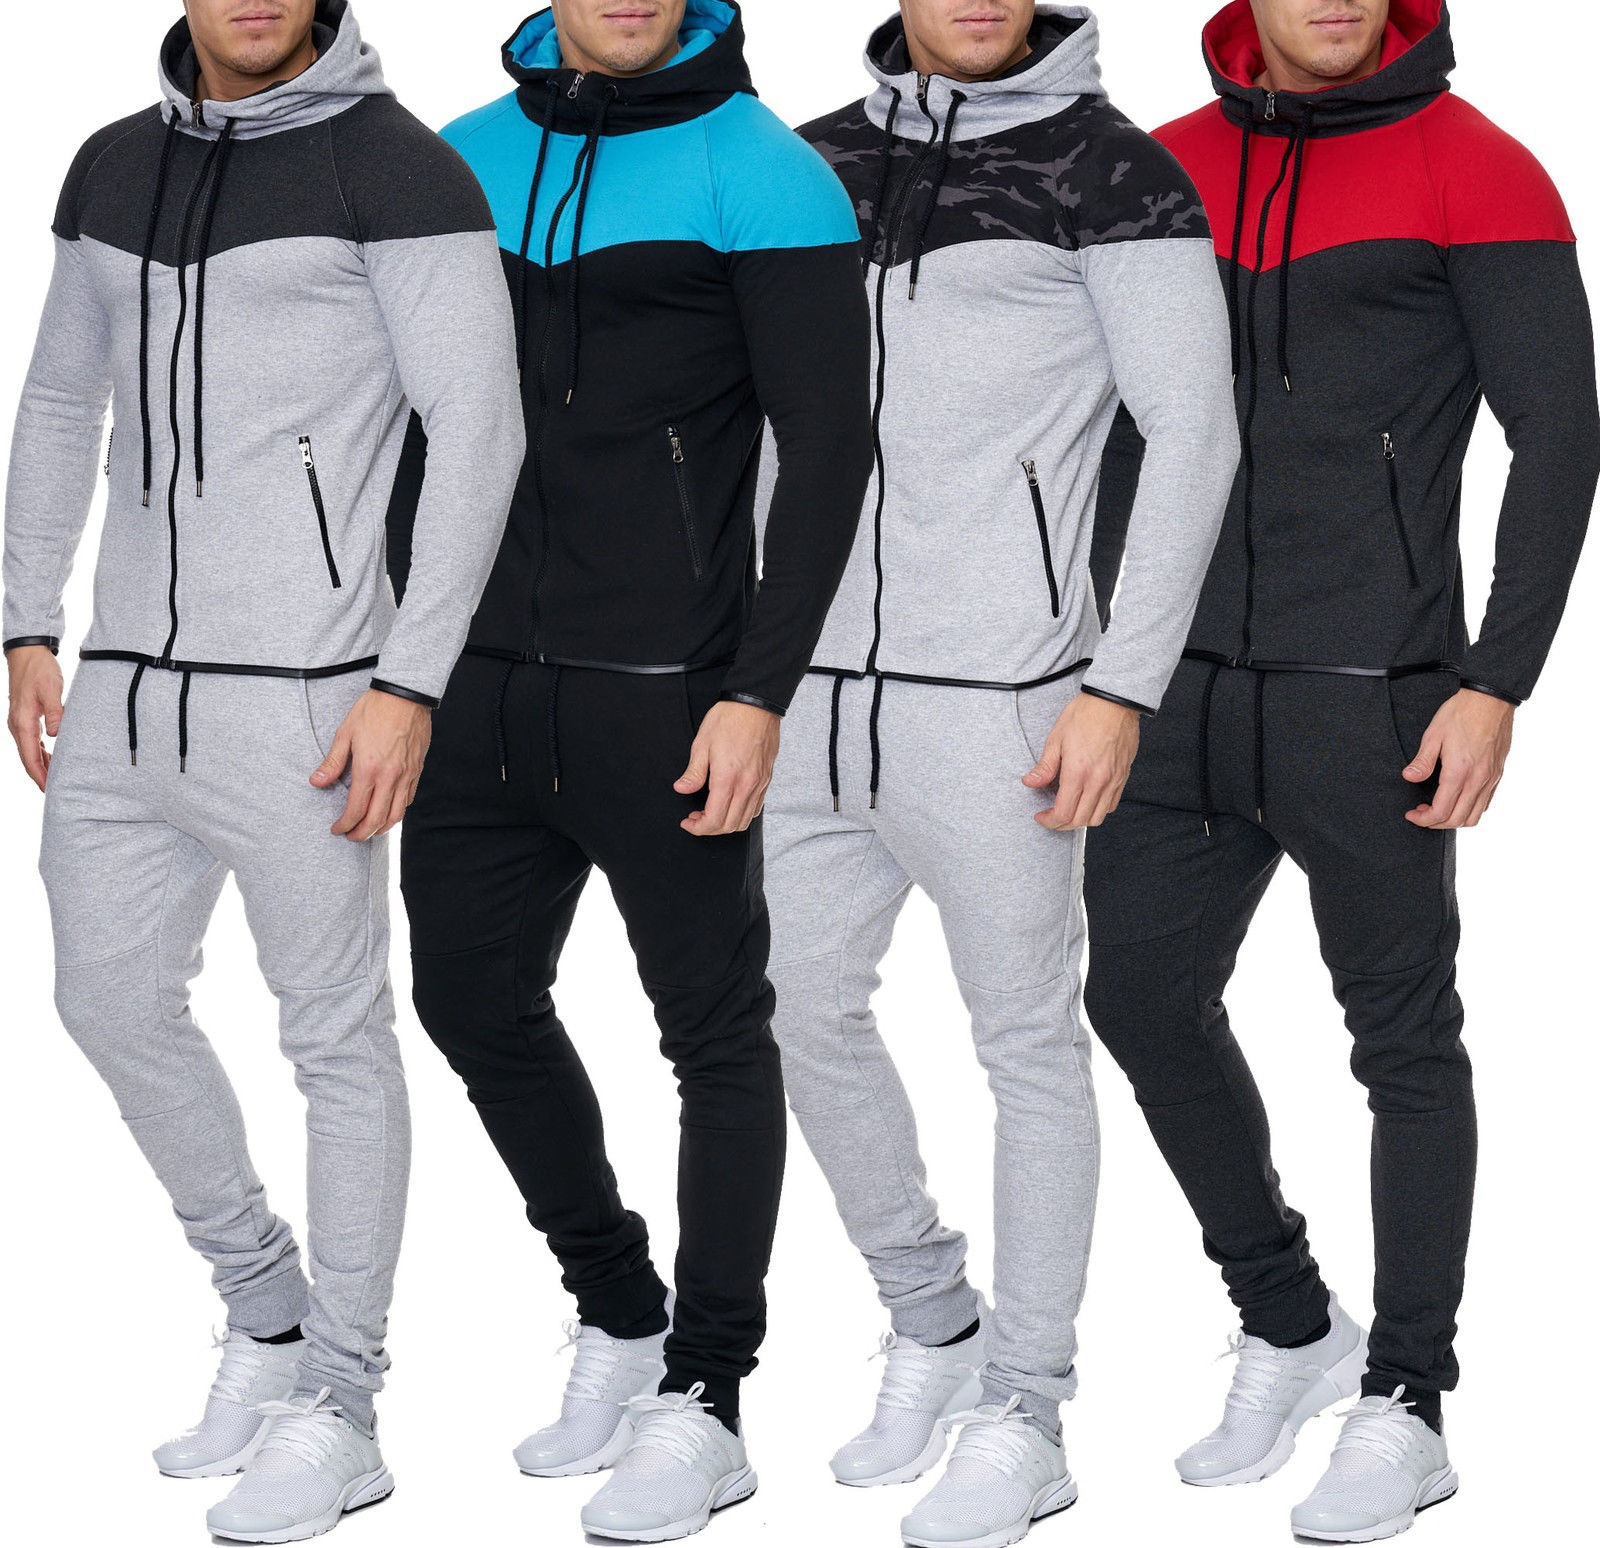 AliExpress Supply Of Goods 2018 Men New Style Casual Fashion Sports Jacket And Trousers Set Tz6431